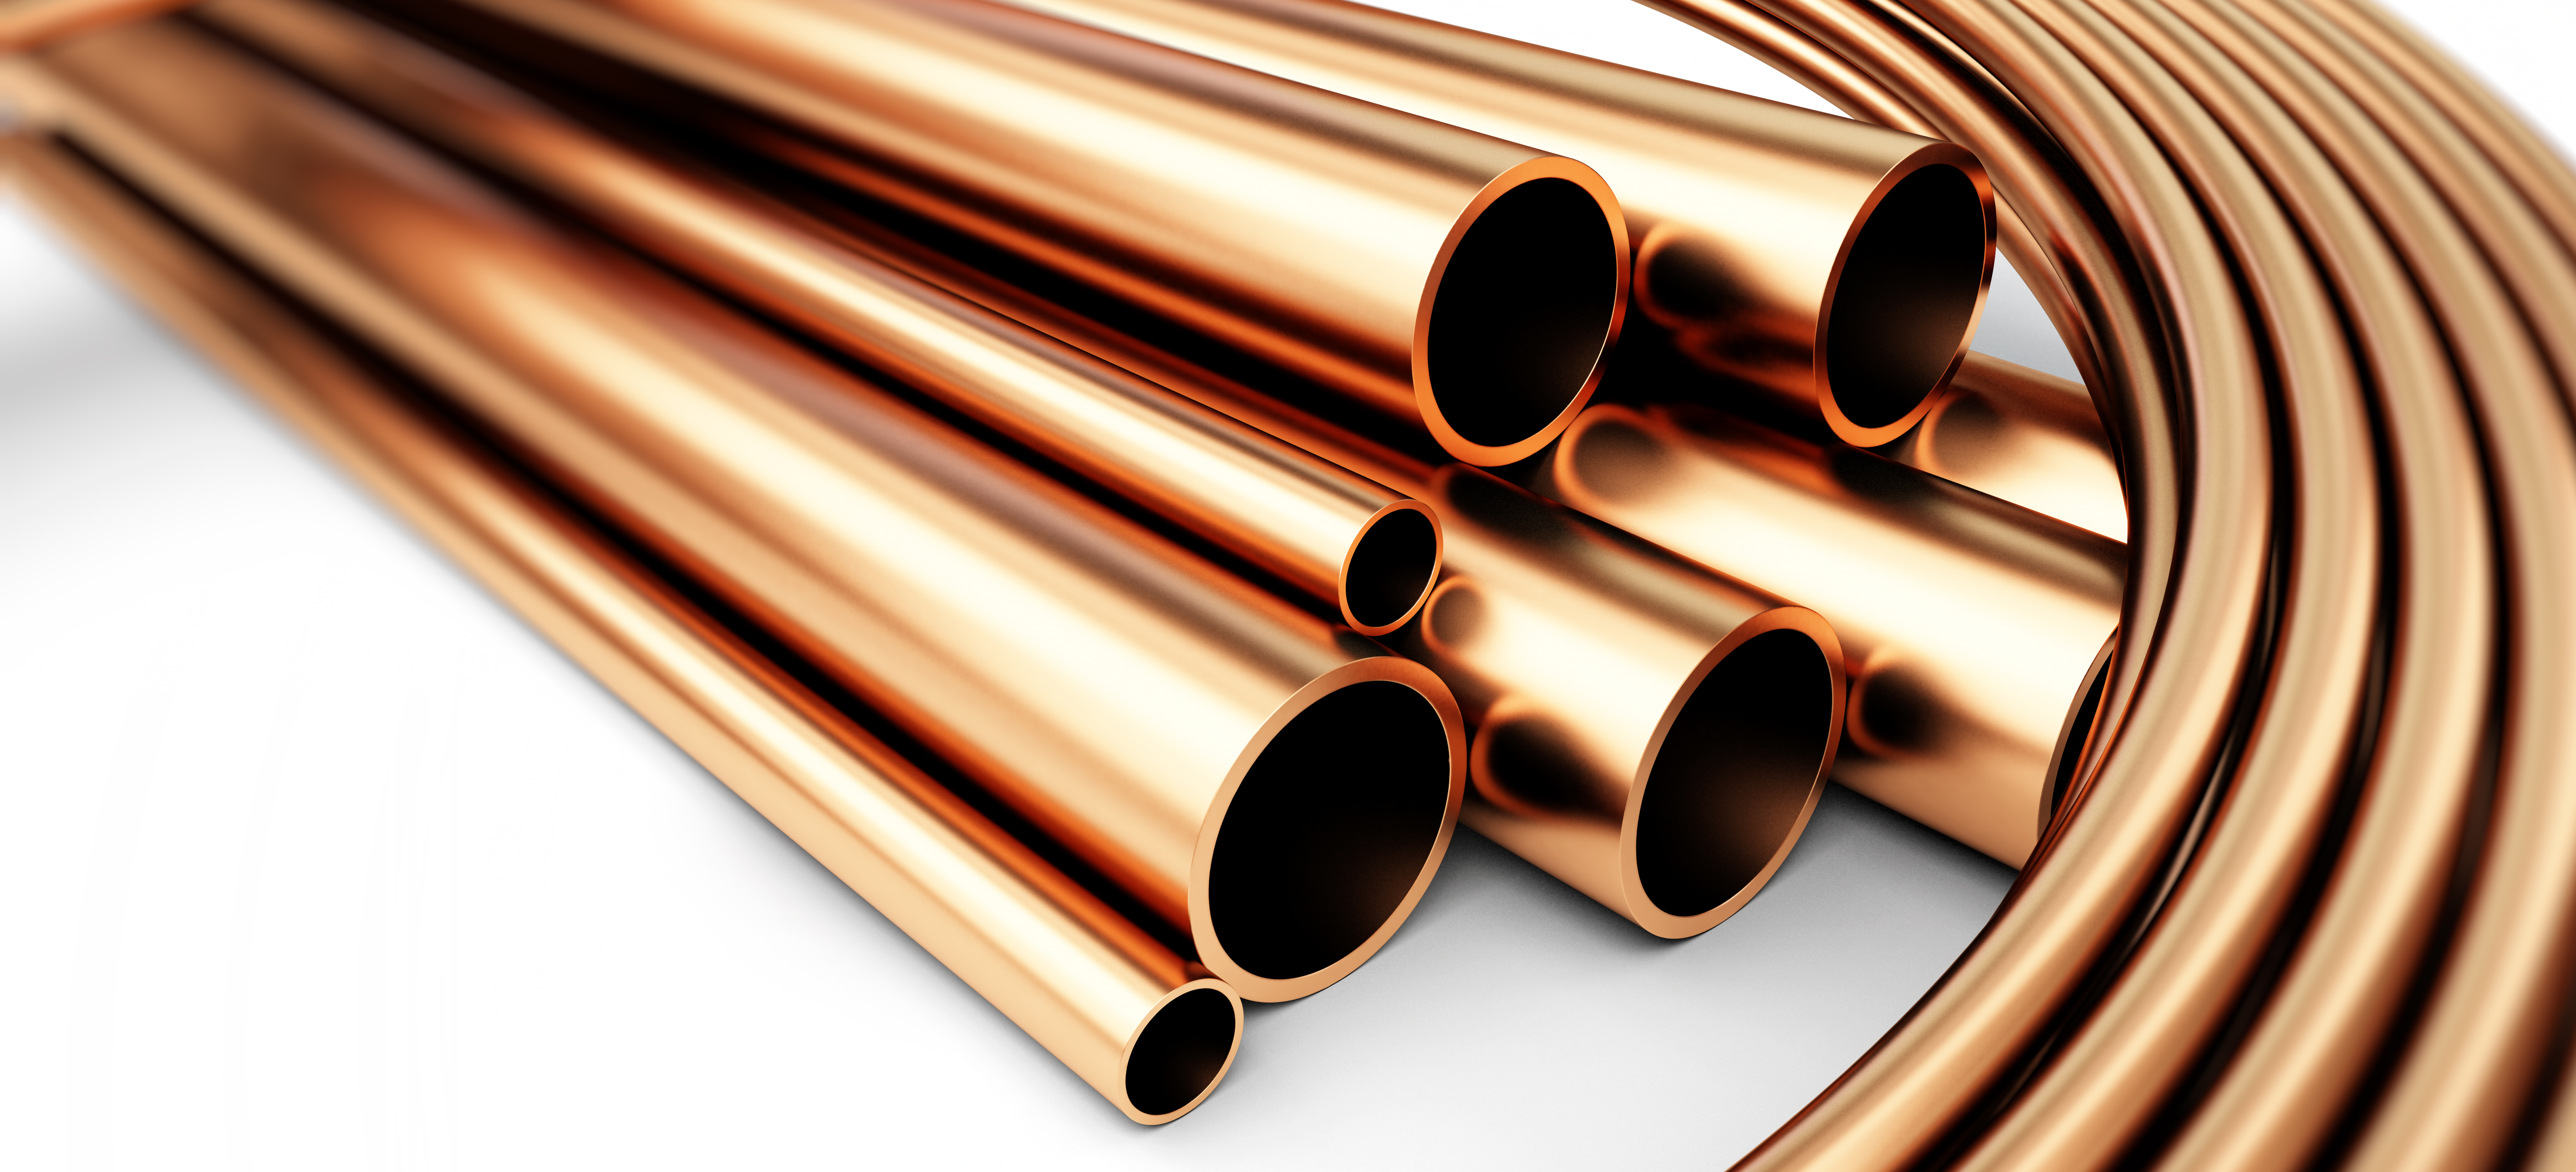 Copper Wave Analysis – 22 July, 2019